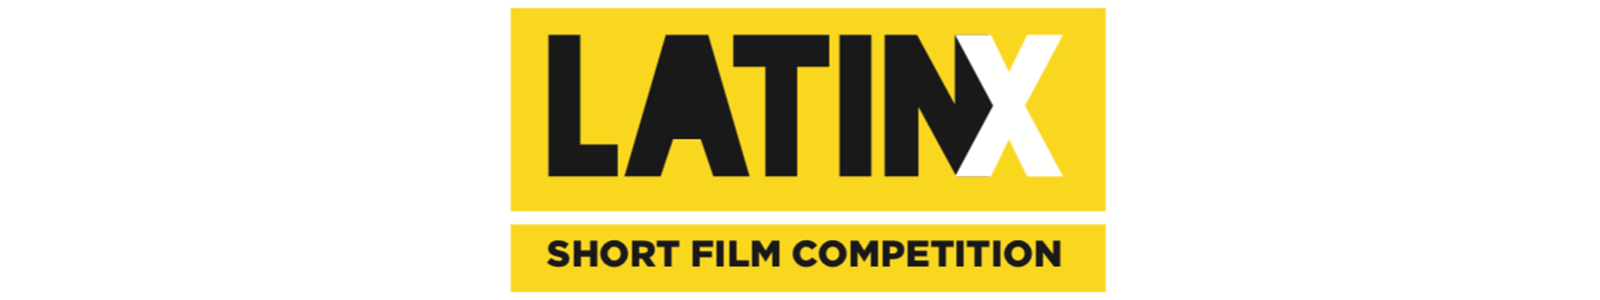 LatinX Short Film Competition Logo